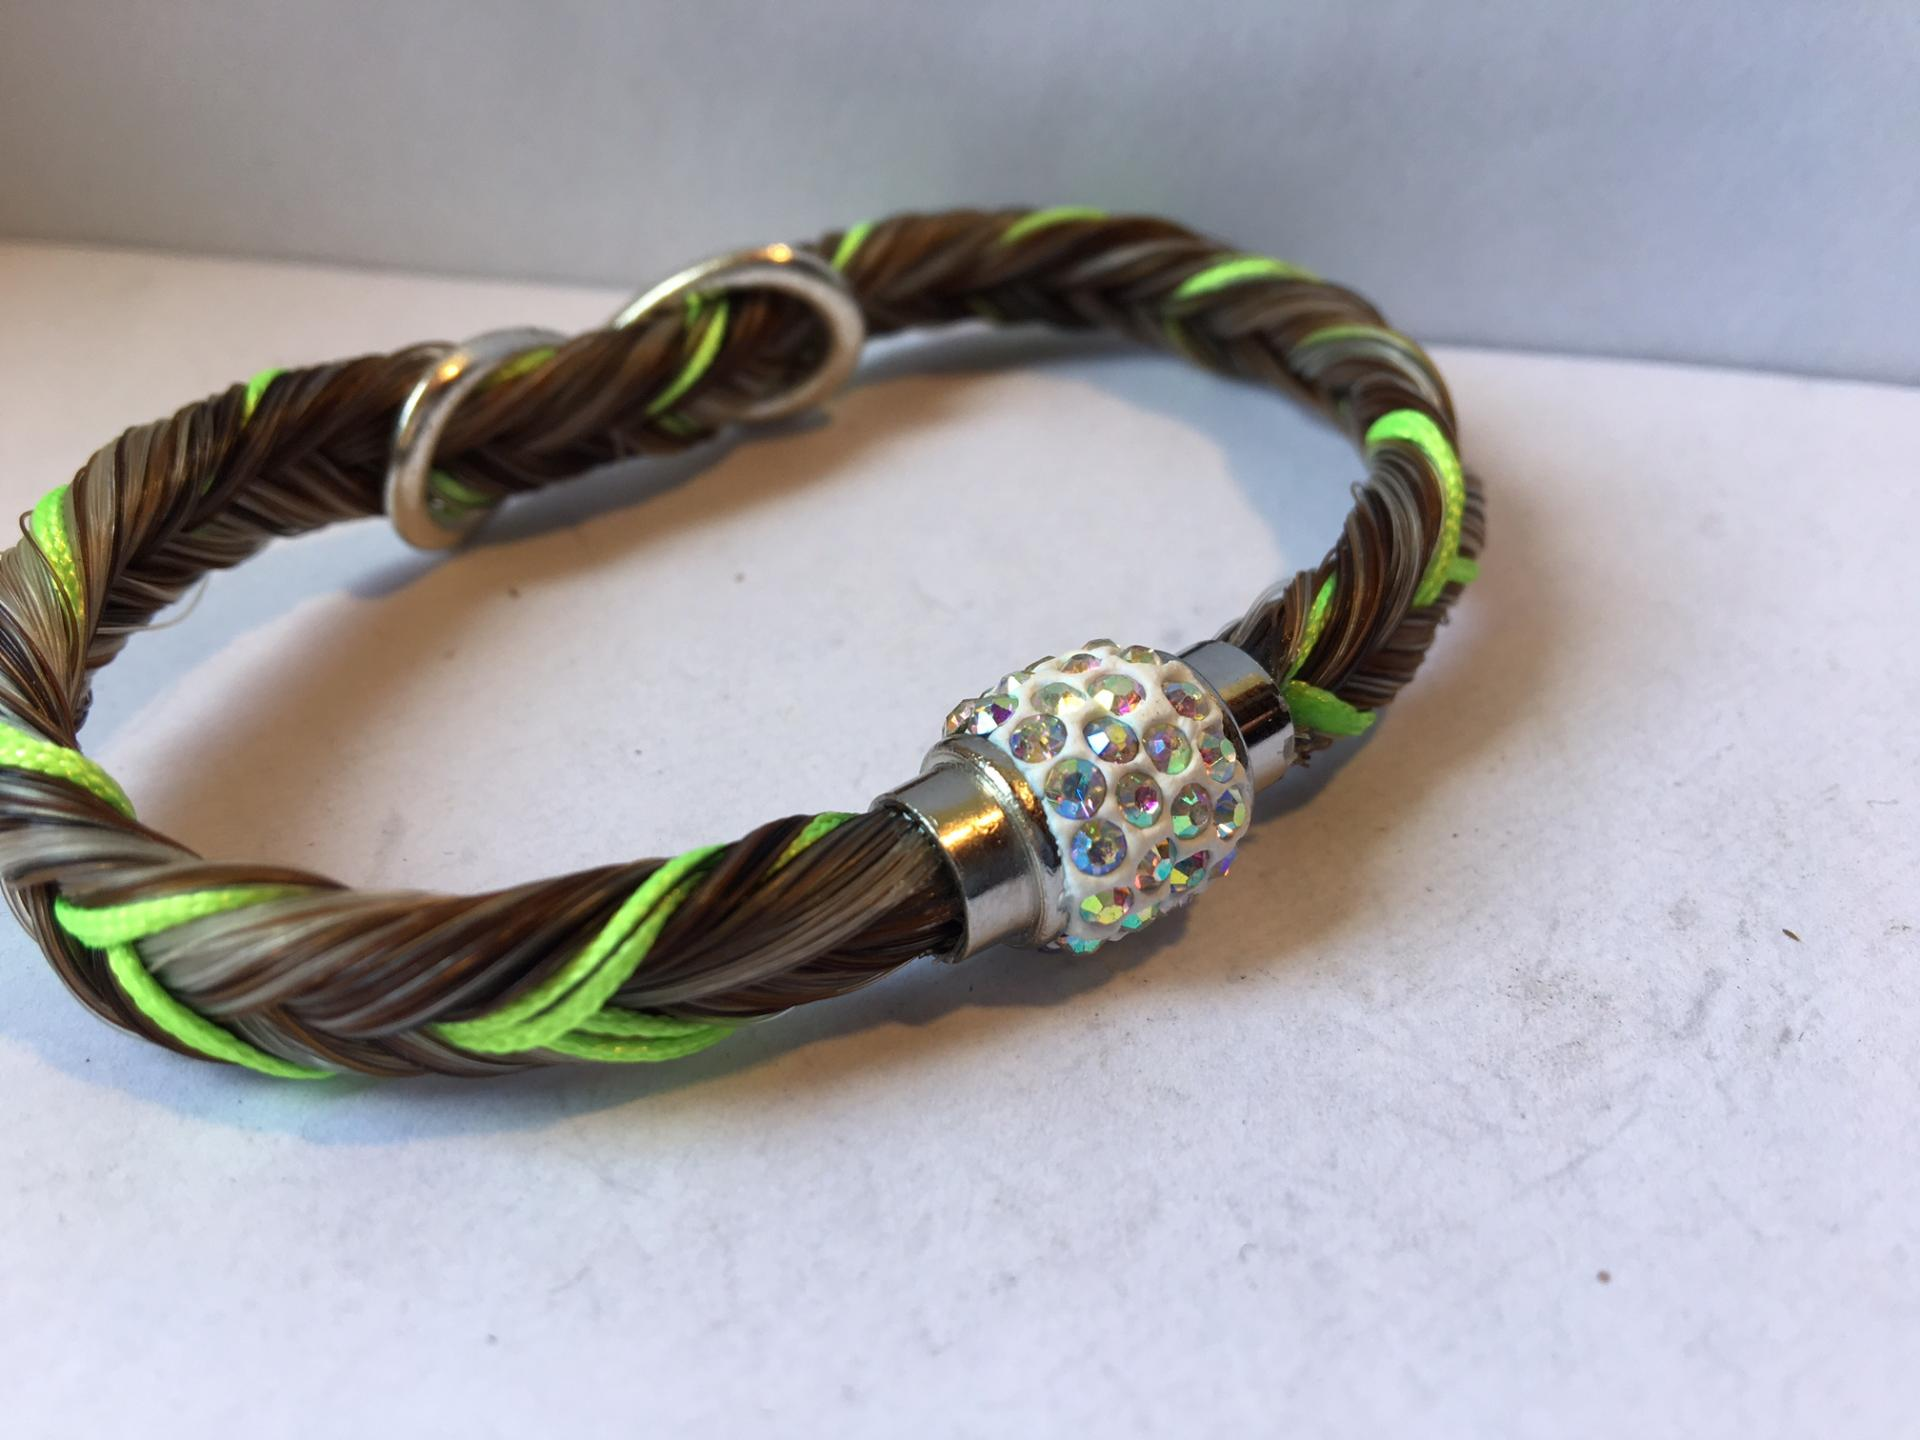 Creation crins bracelet cheval strass bling brillant vert pomme alezan flash infini ado class moderne